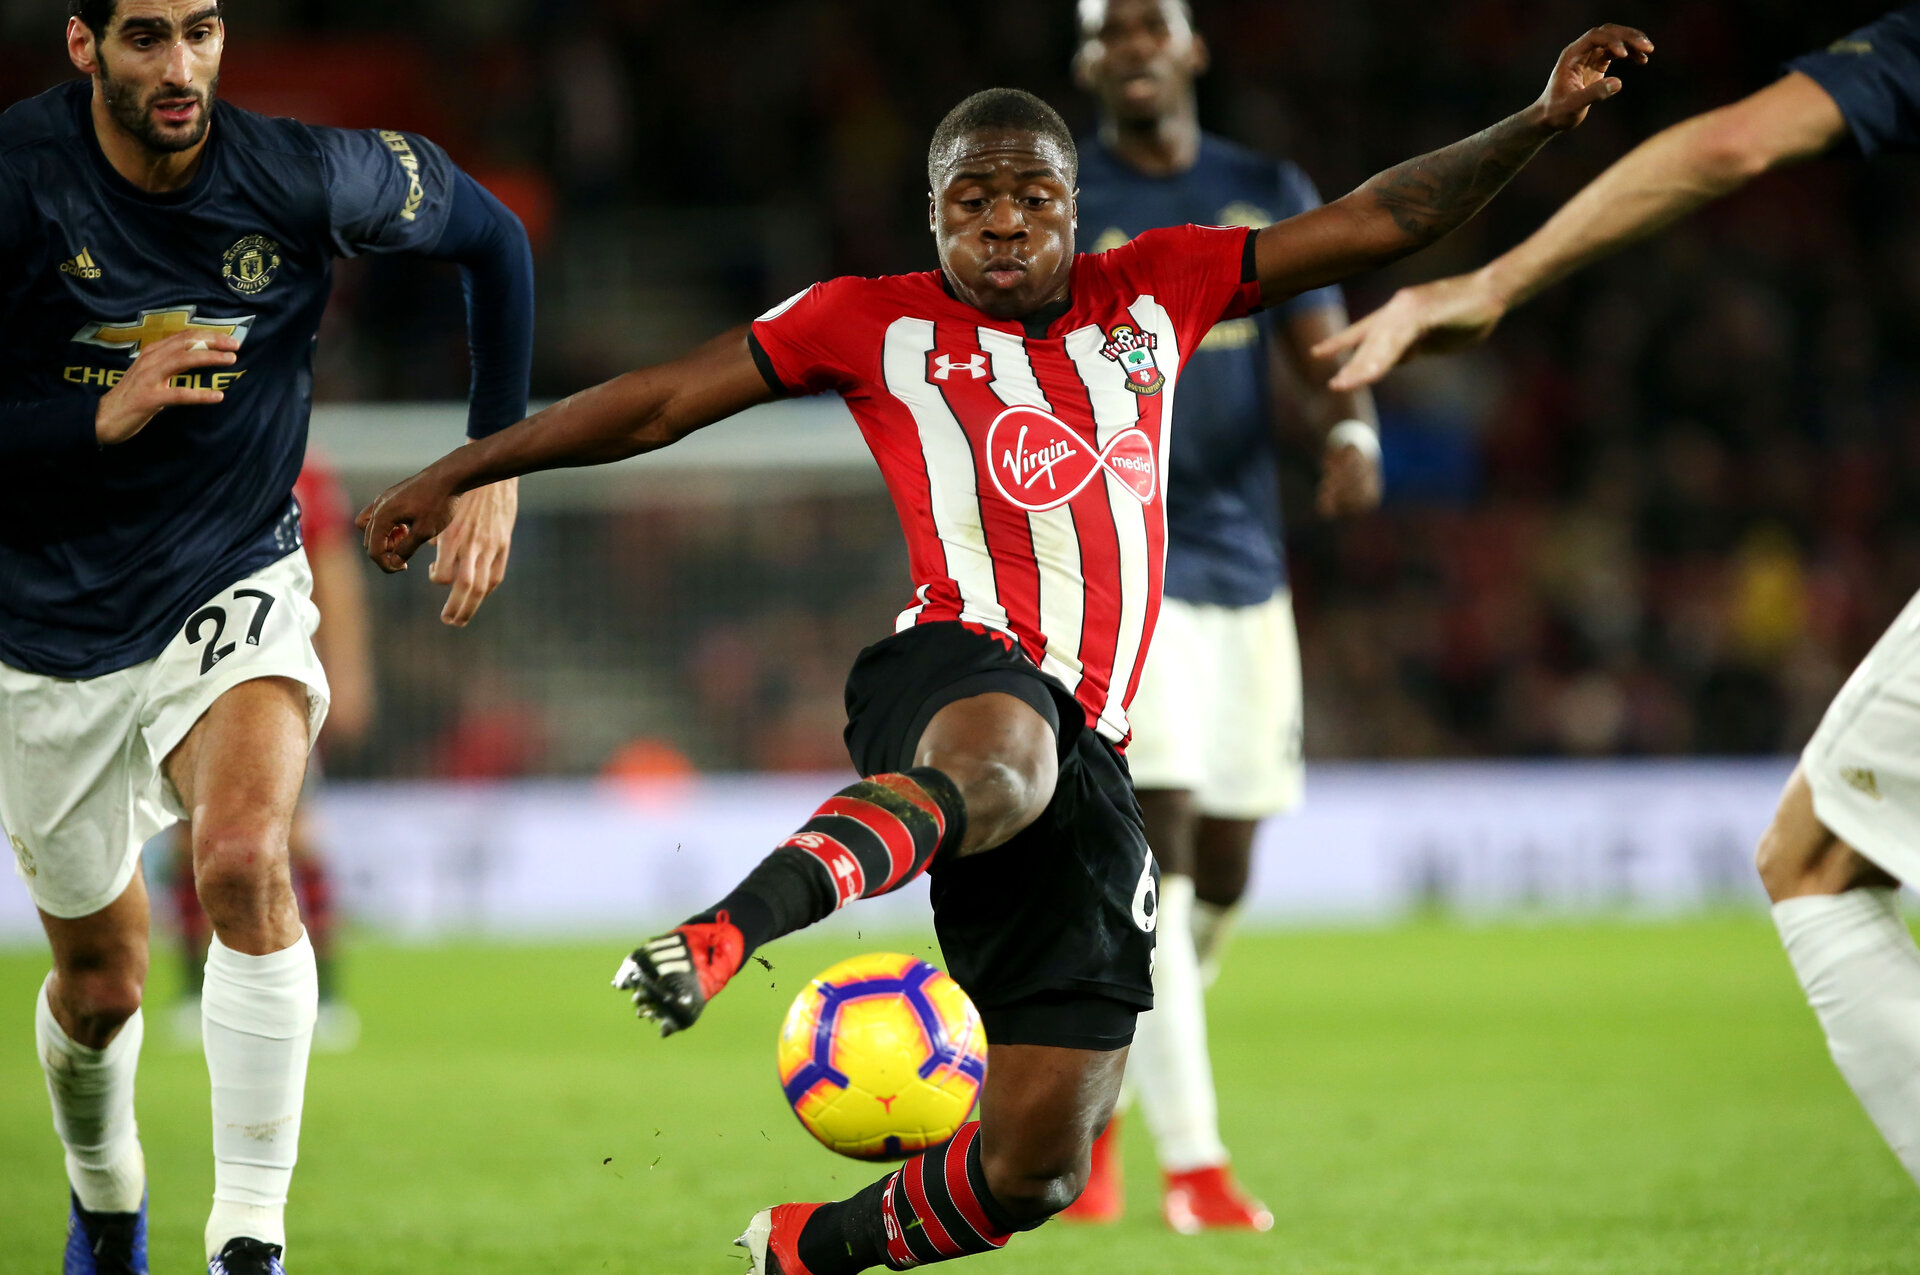 SOUTHAMPTON, ENGLAND - DECEMBER 01: Michael Obafemi of Southampton during the Premier League match between Southampton FC and Manchester United at St Mary's Stadium on December 1, 2018 in Southampton, United Kingdom. (Photo by Chris Moorhouse/Southampton FC via Getty Images)